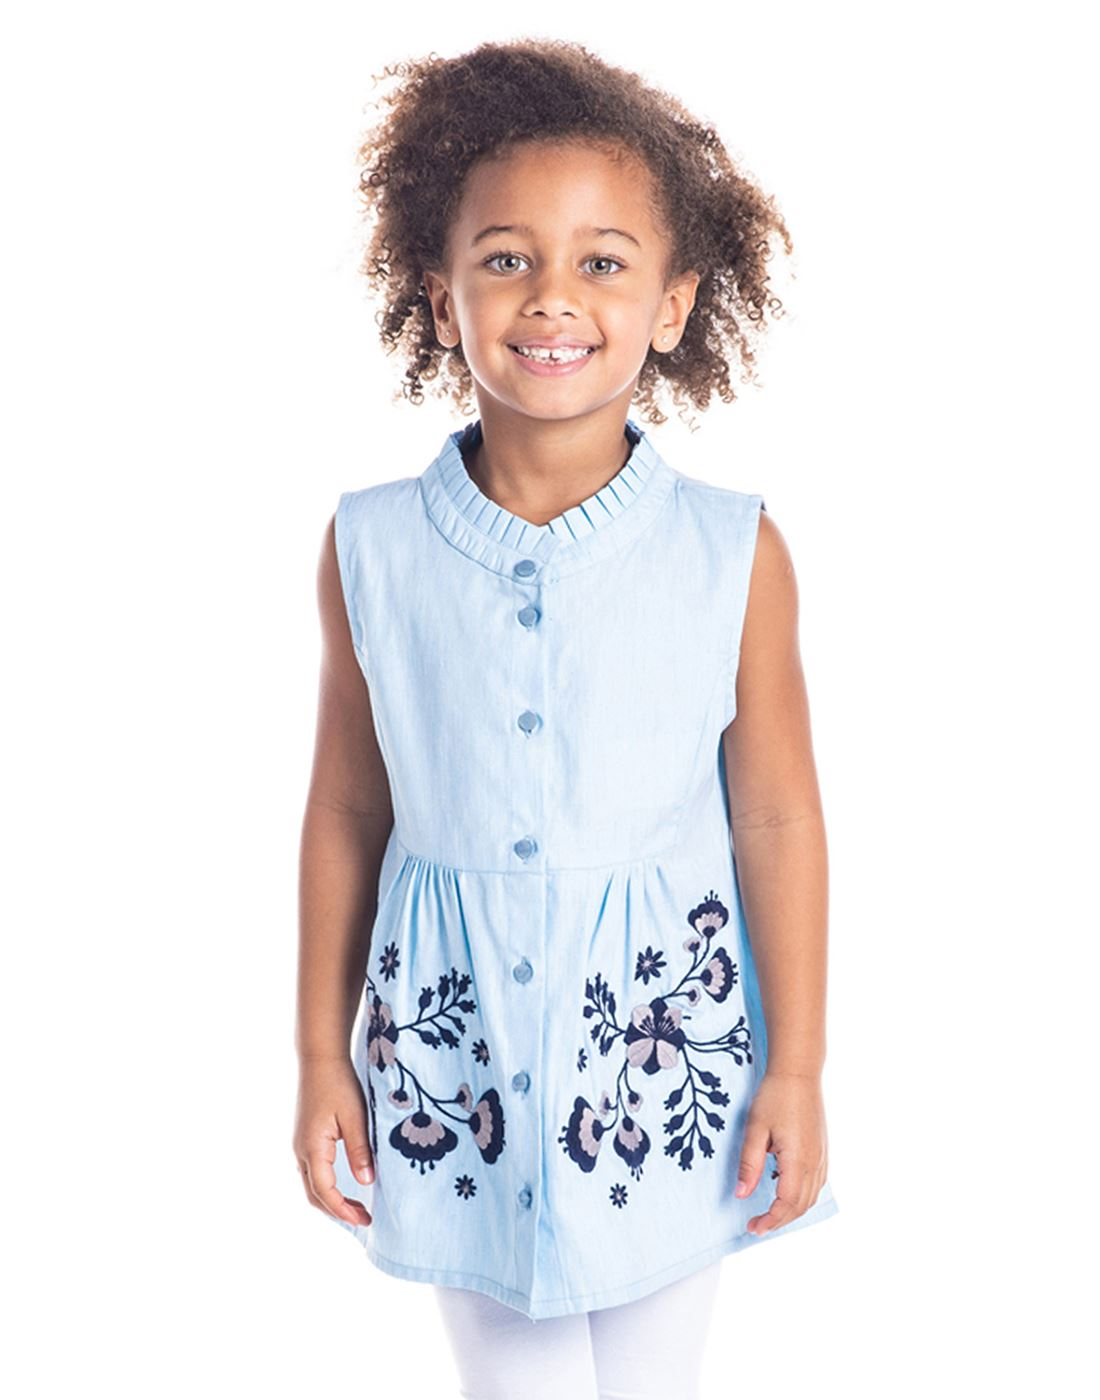 Cherry Crumble California Casual Wear Embroidered Girls Top